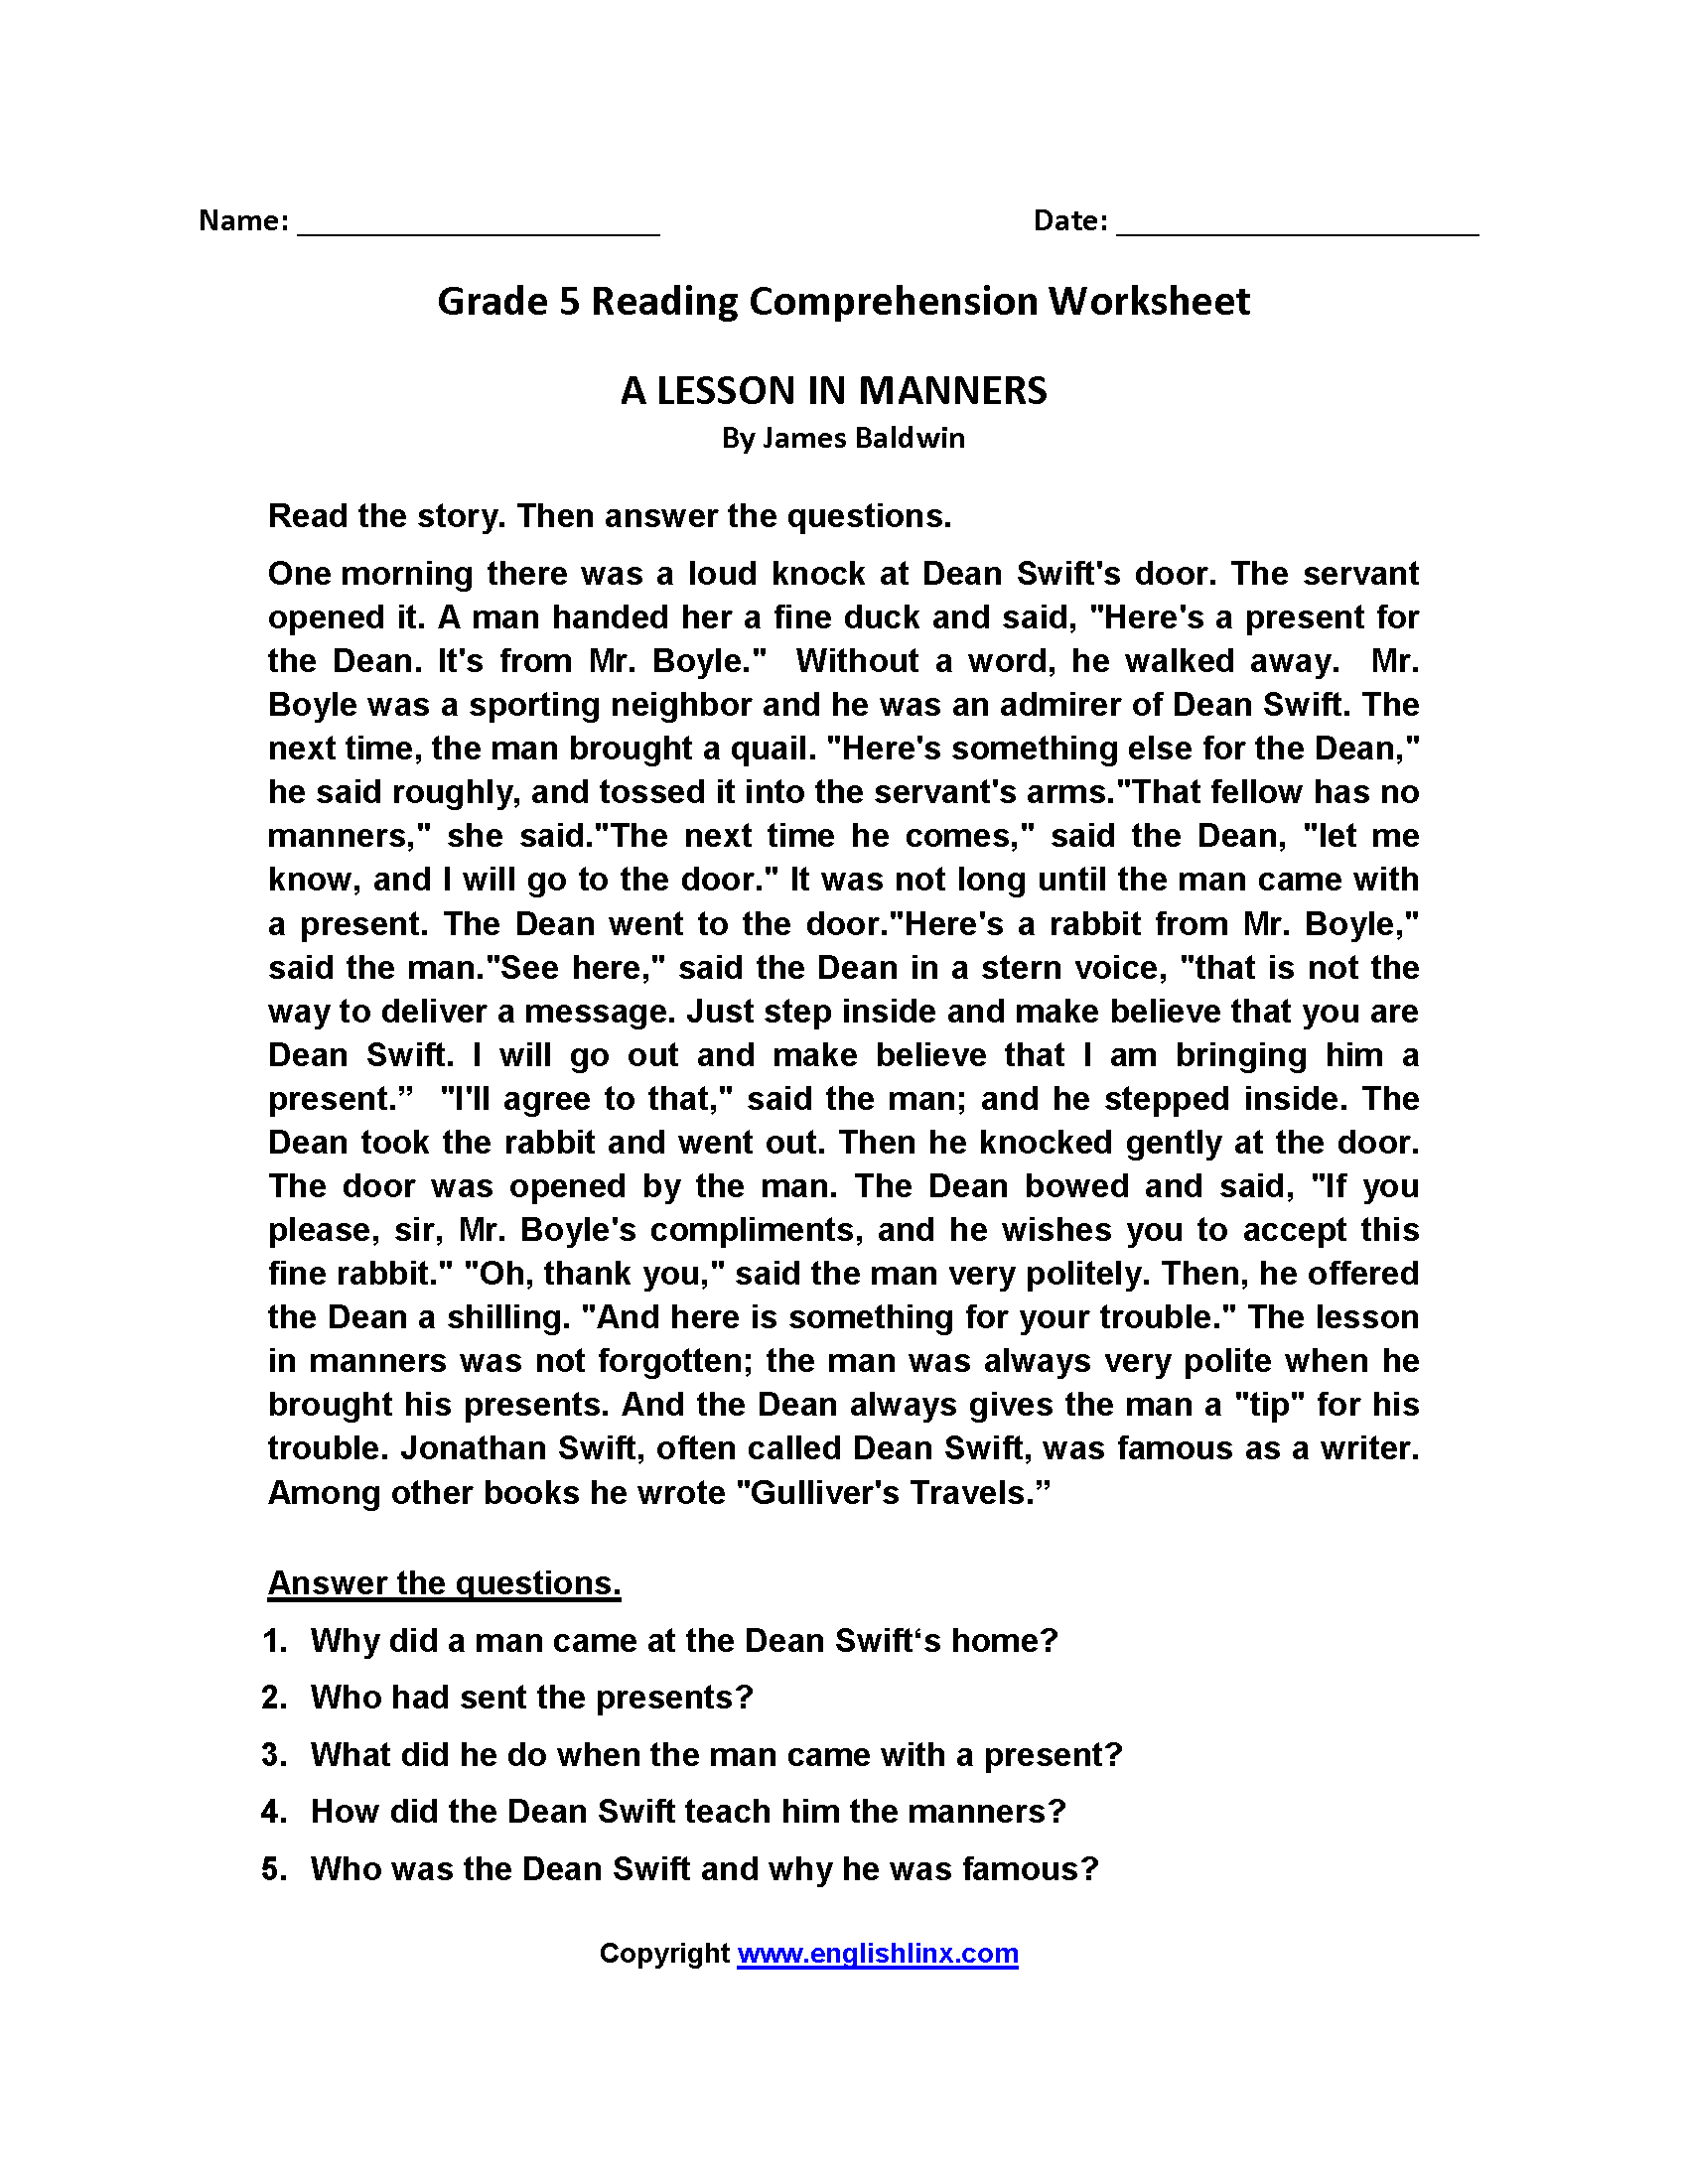 Lesson in Manners Fifth Grade Reading Worksheets   Reading comprehension  worksheets [ 2200 x 1700 Pixel ]